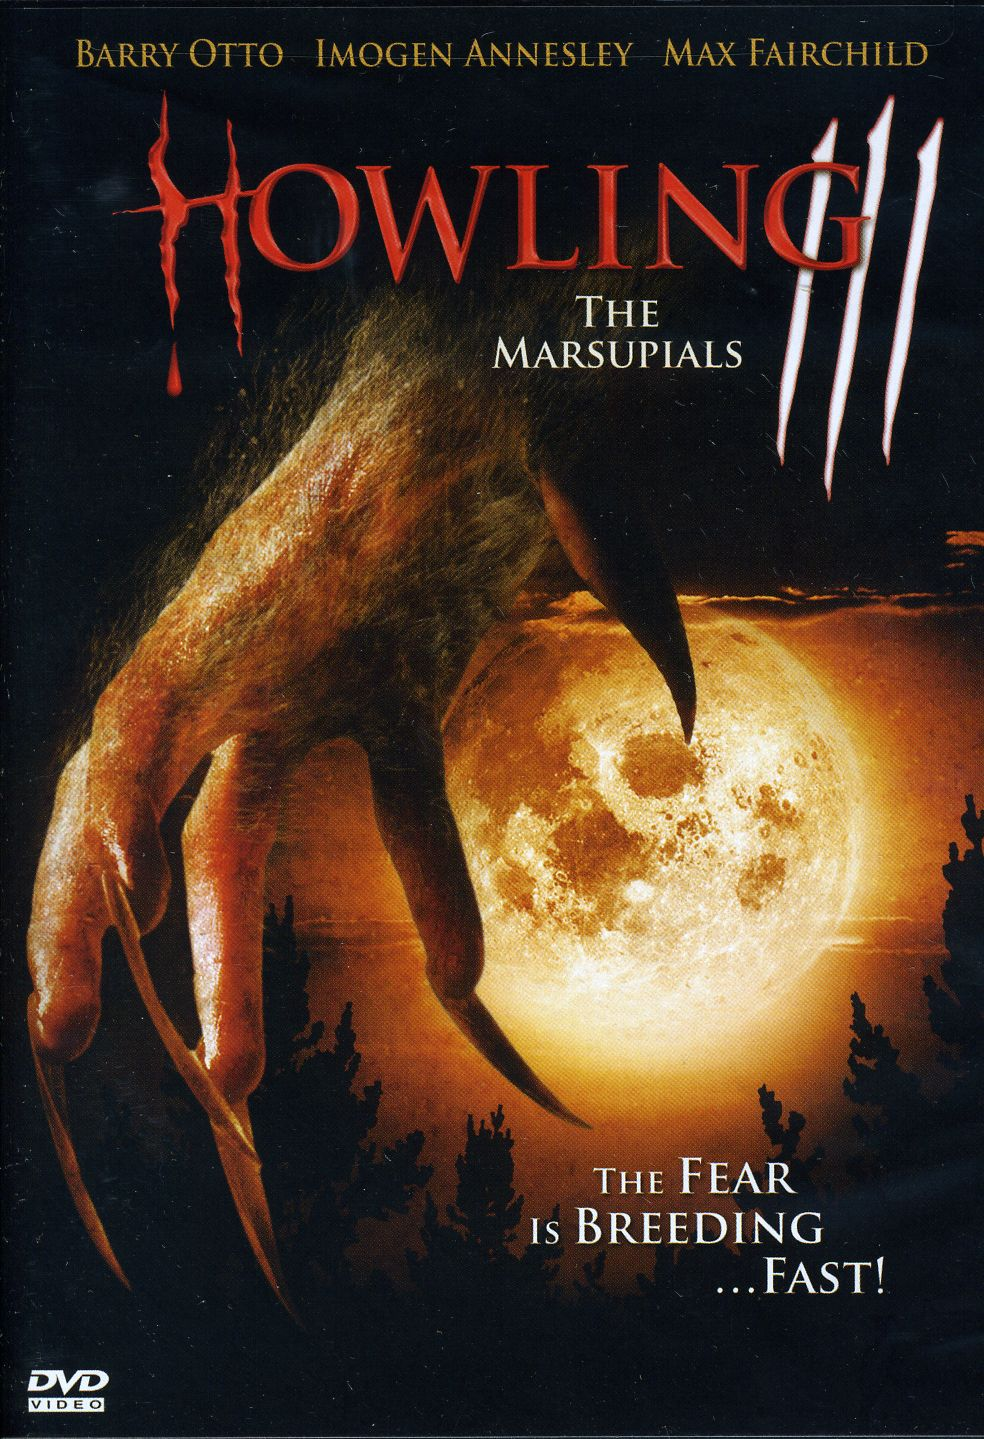 The Howling III: The Marsupials (DVD)